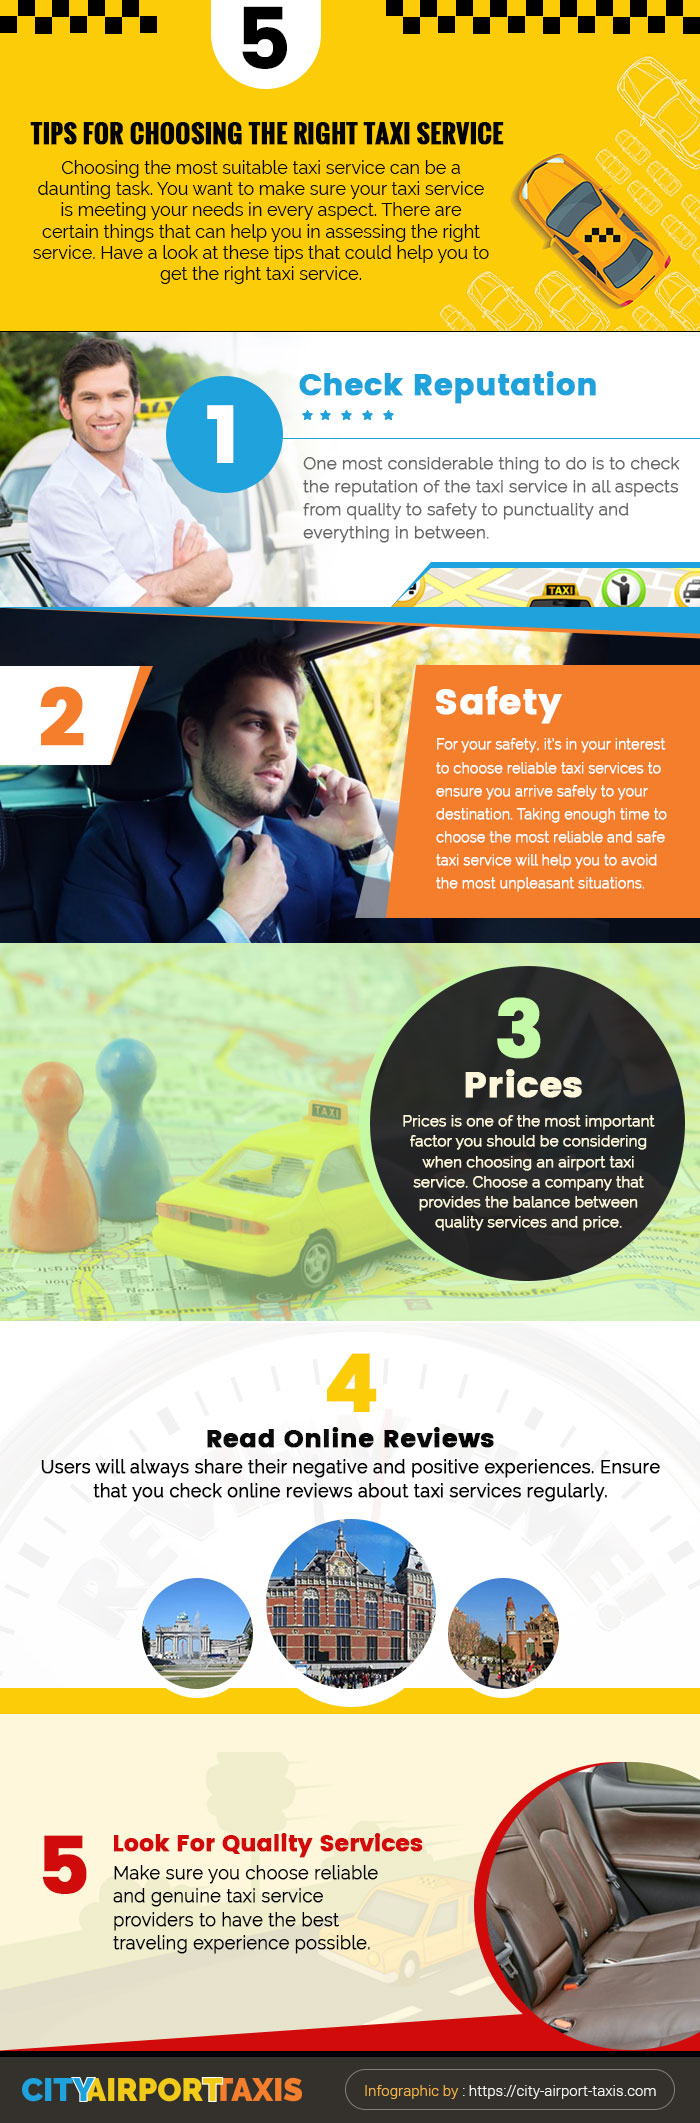 5 Tips For Choosing the Right Taxi Service